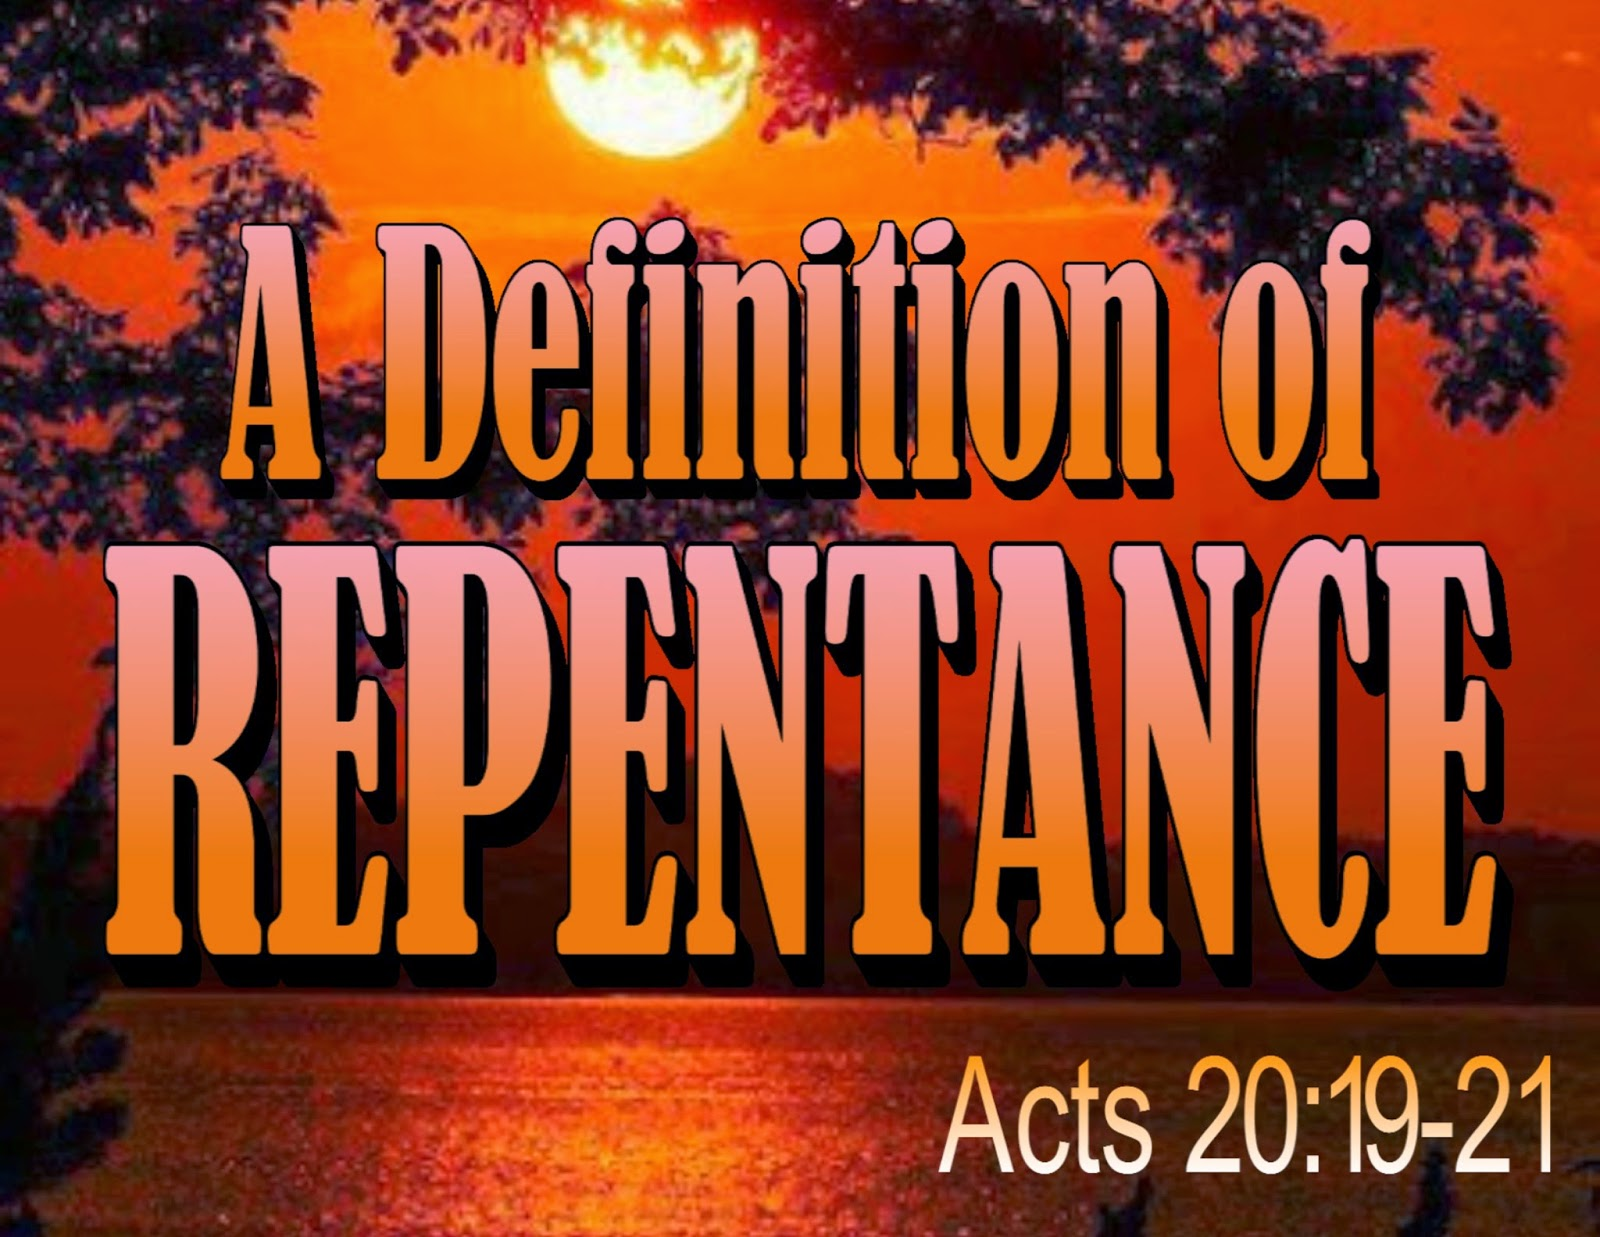 maxevangel: a definition of repentance!